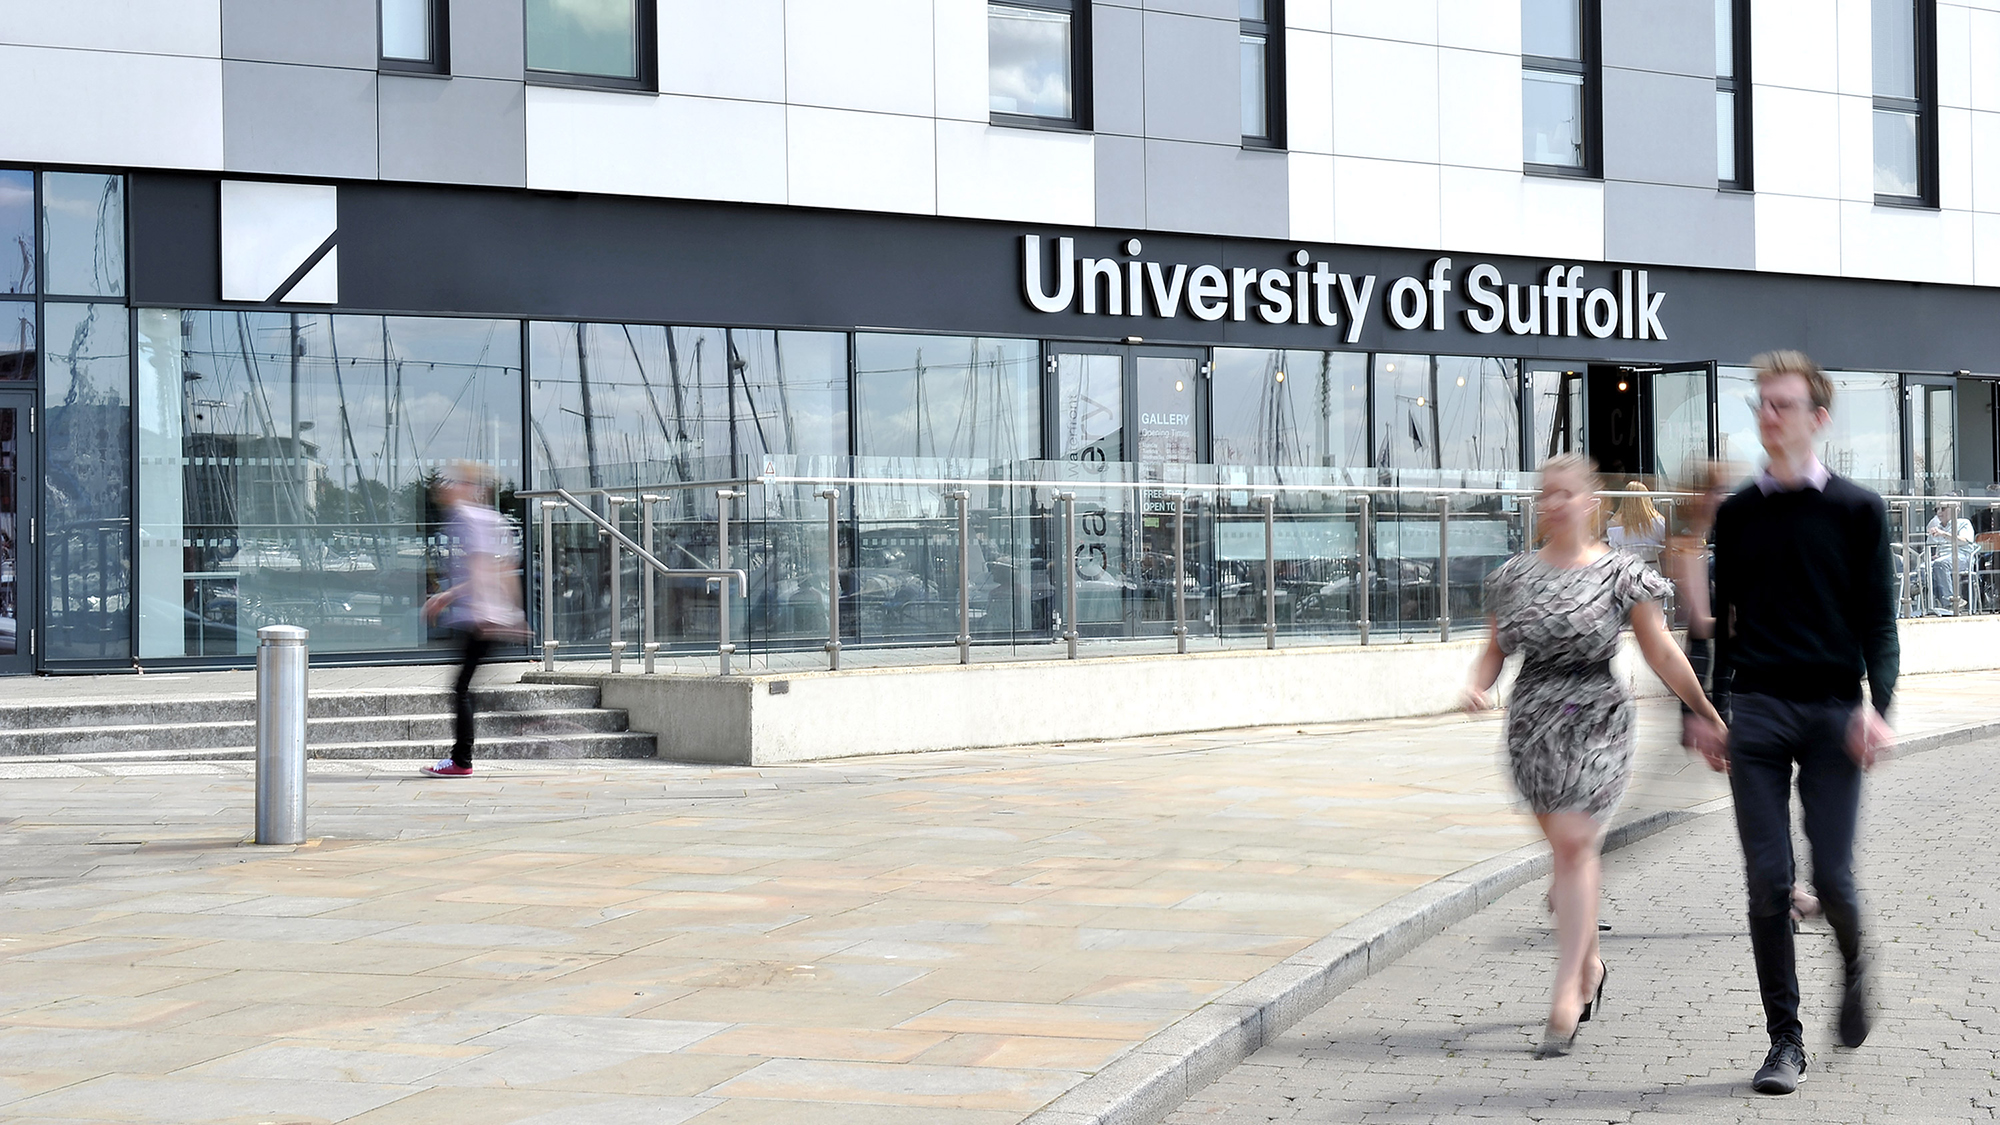 2_University_of_Suffolk_Signage